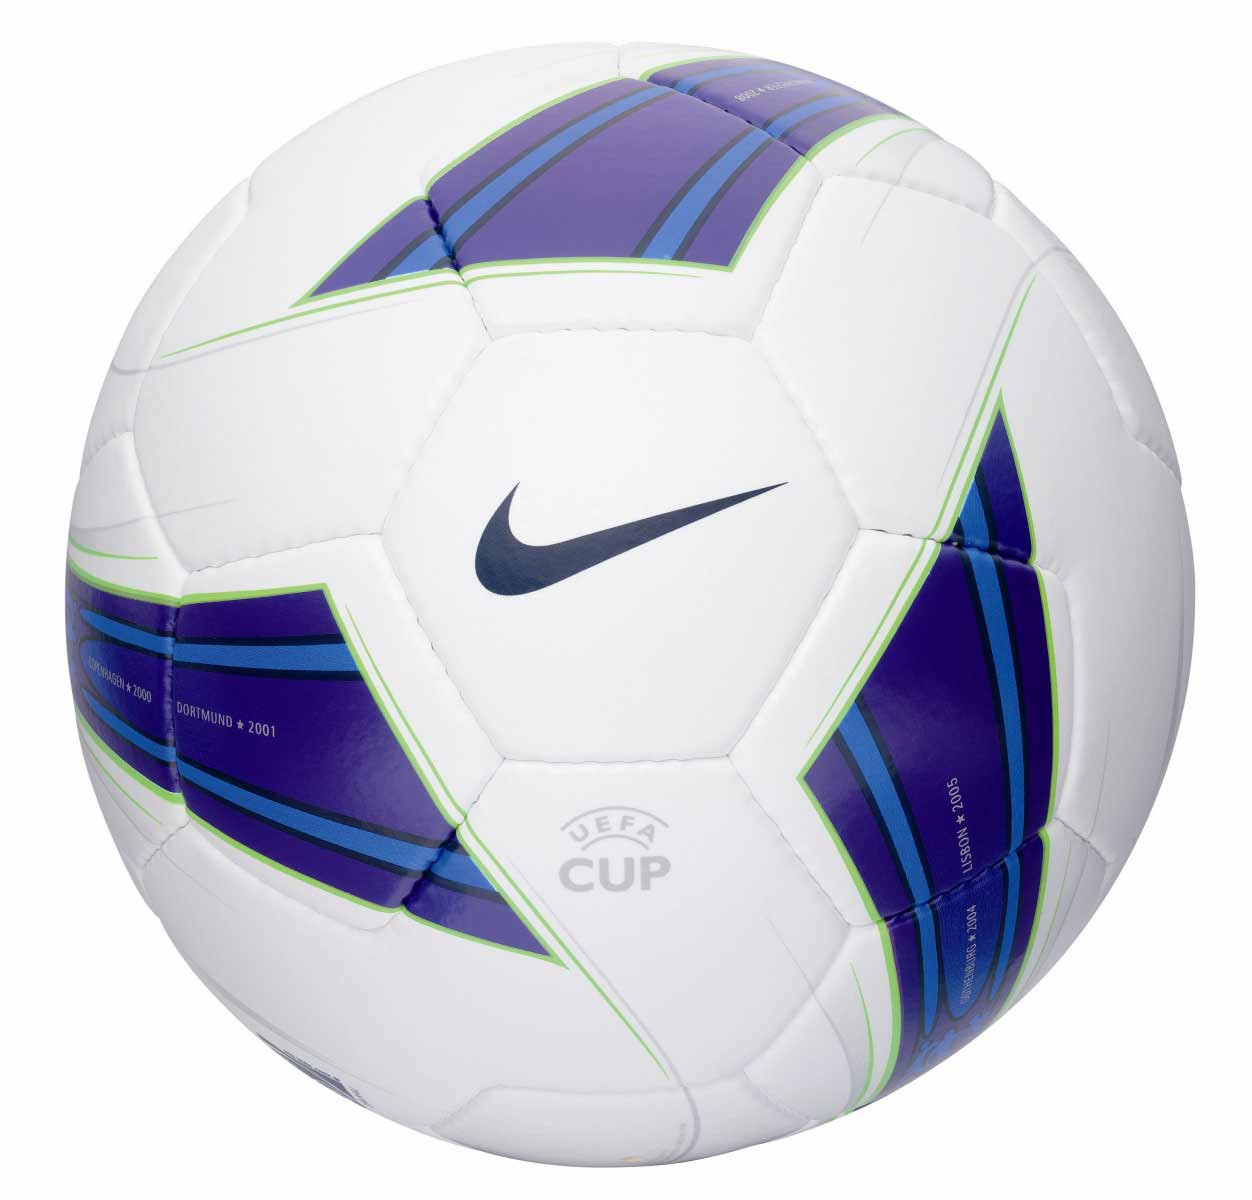 Мяч финалf Кубка УЕФА 2008 - Nike UEFA Cup Conquest Ball